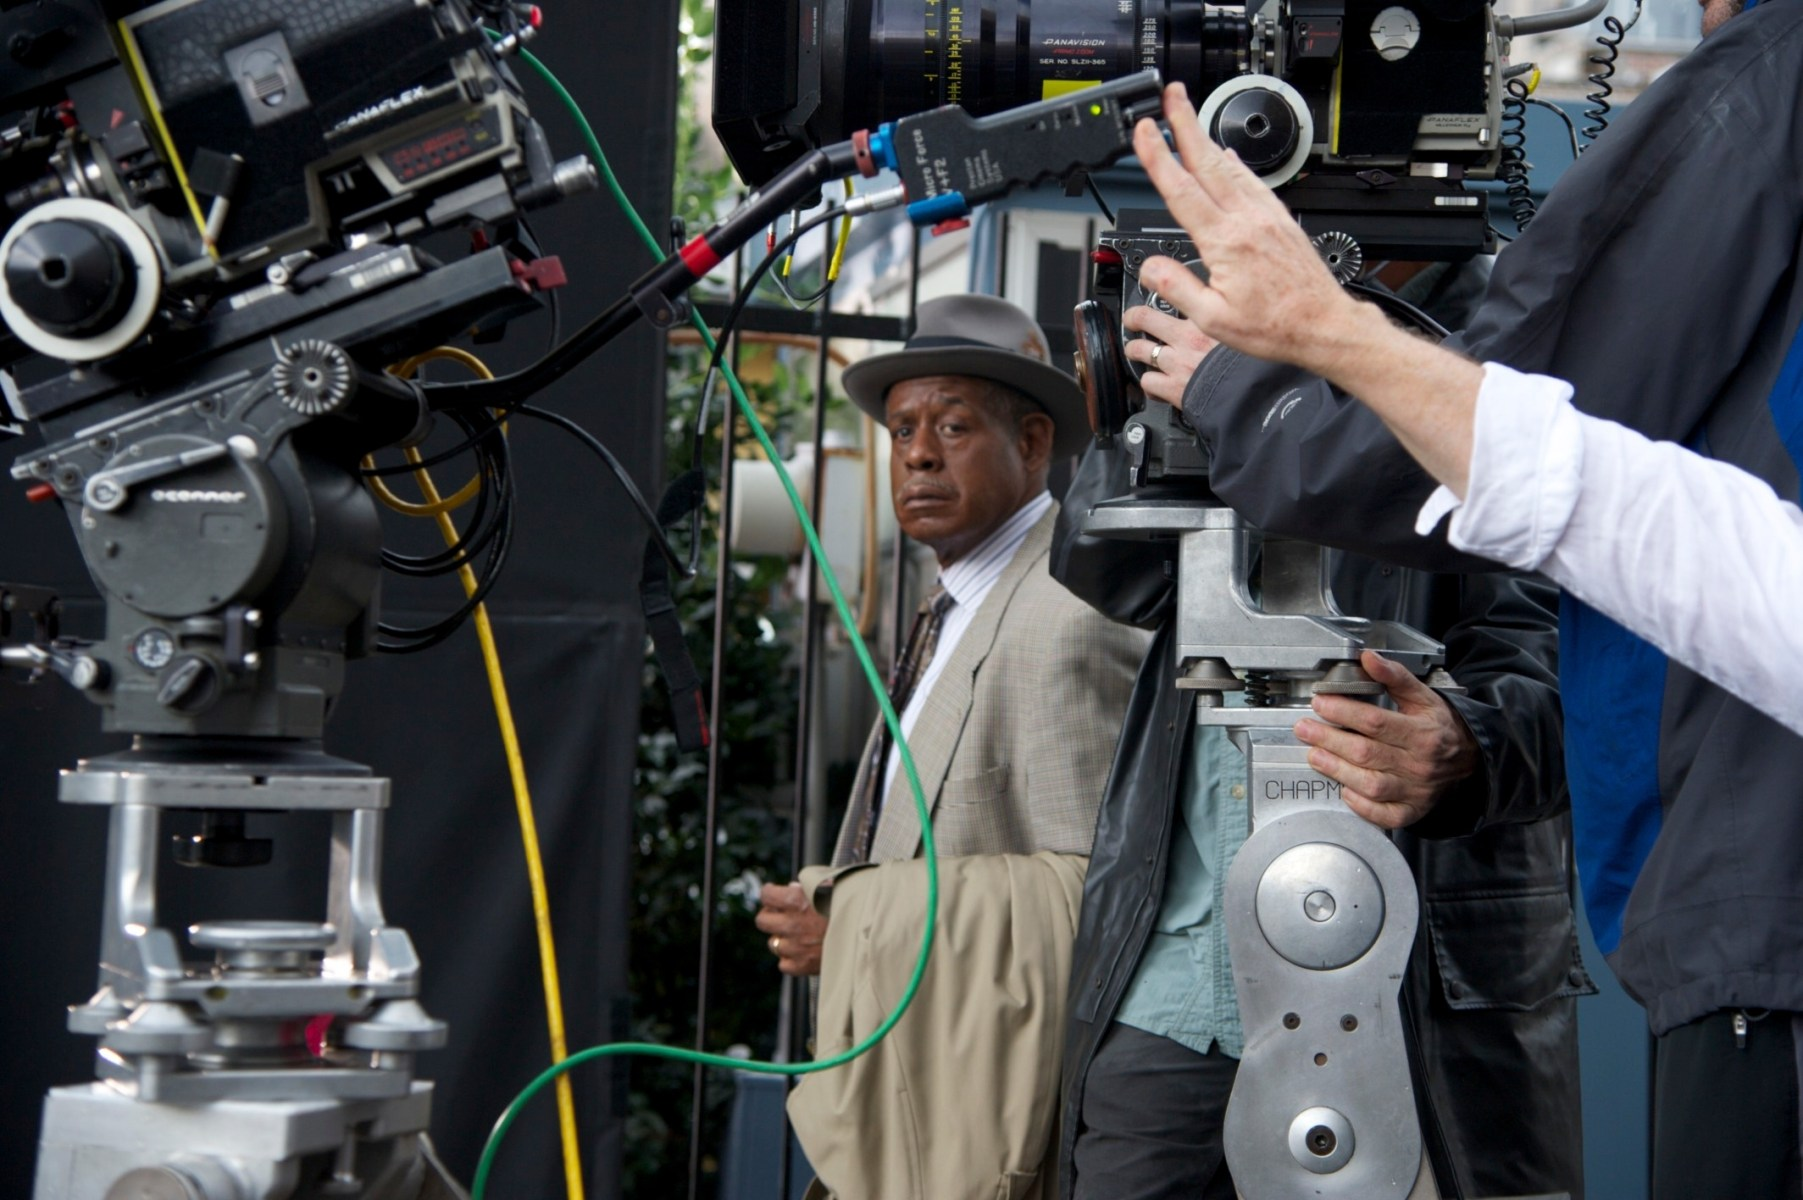 The Butler (2013) Behind the Scenes